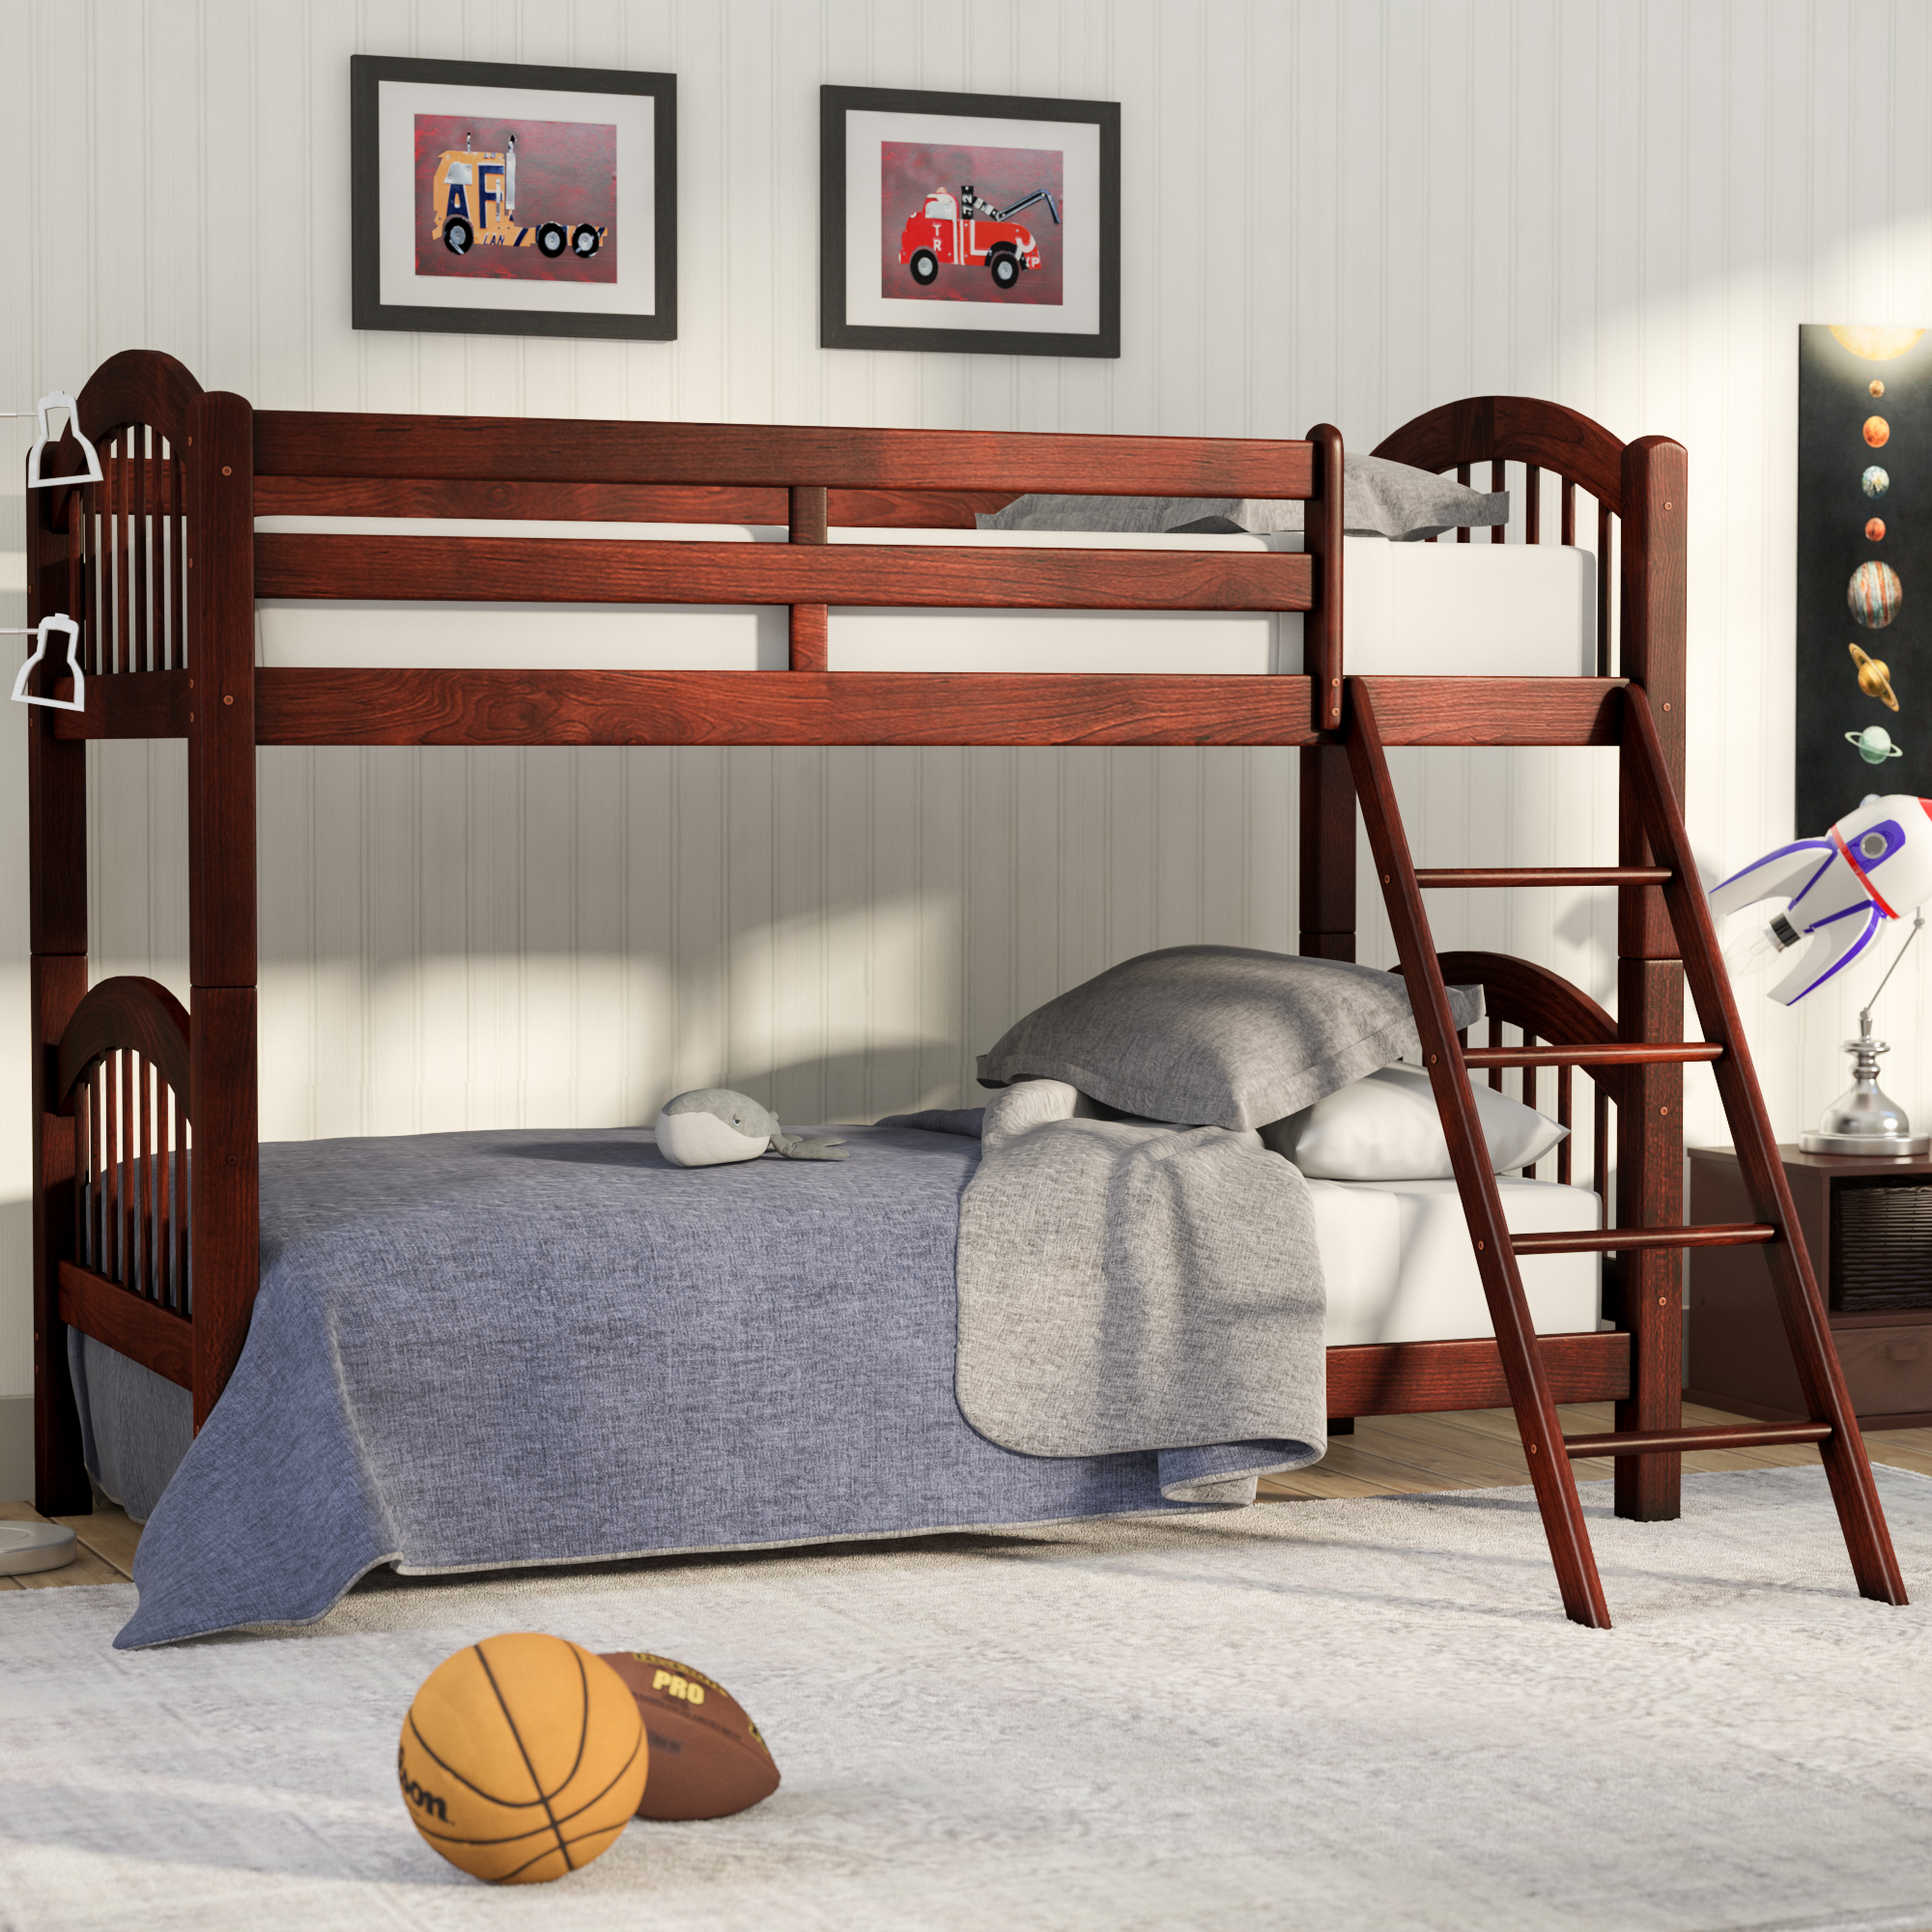 Superbe Kids Bunk U0026 Loft Beds